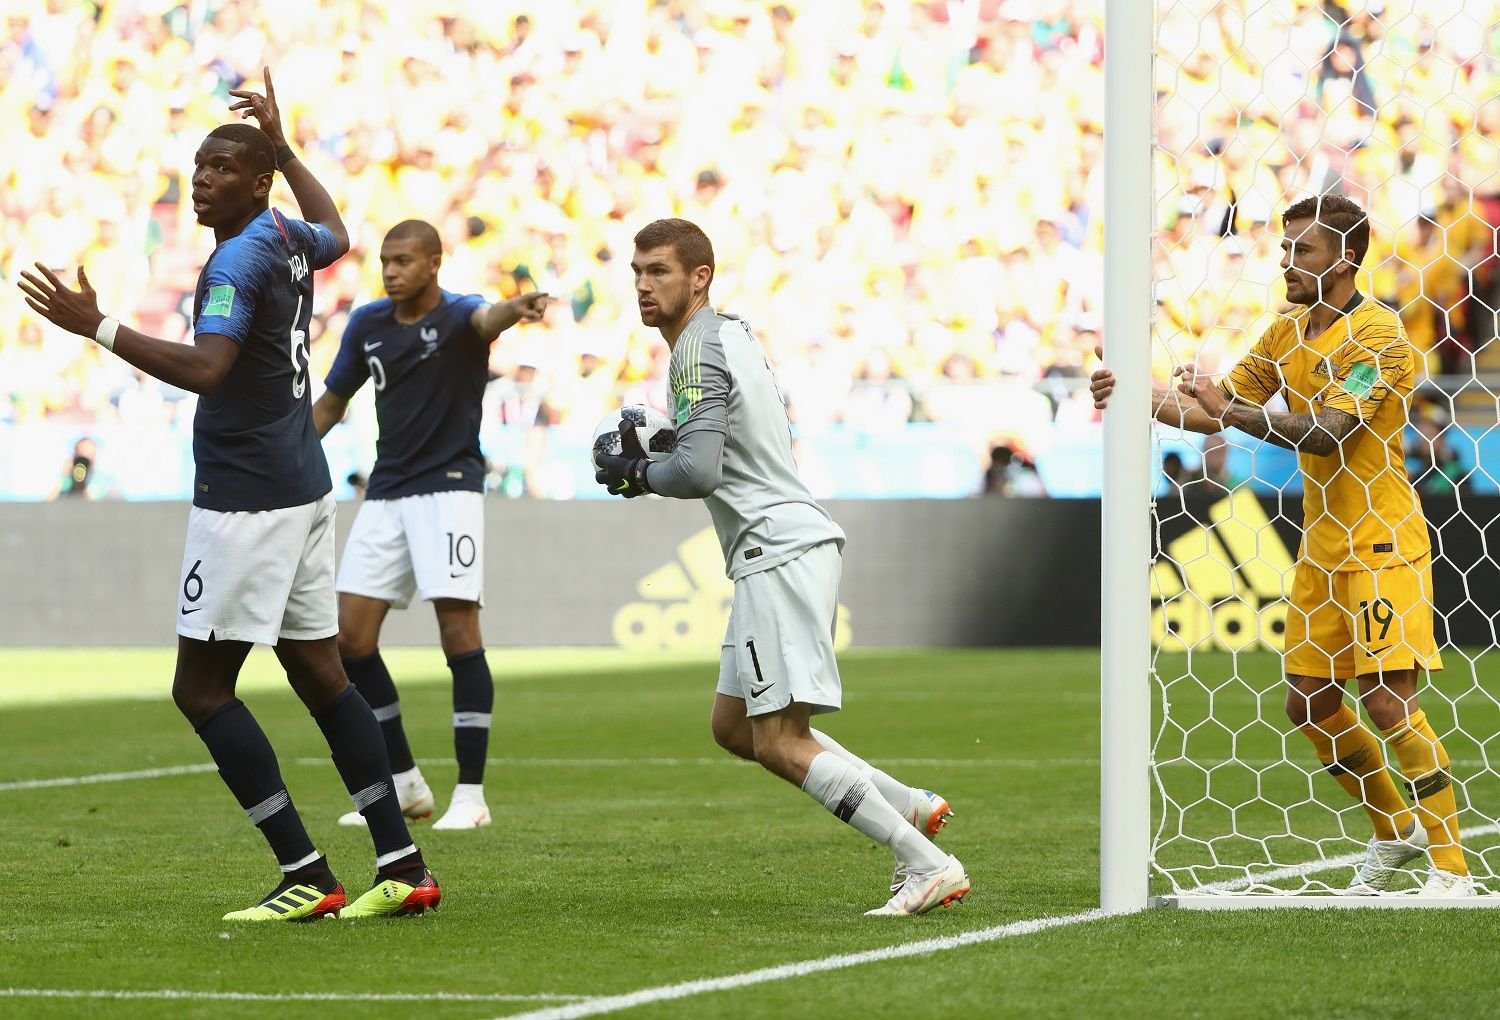 KAZAN, RUSSIA - JUNE 16: Paul Pogba of France celebrates after scoring his side's second goal as Socceroos goalkeeper Mathew Ryan looks on during the 2018 FIFA World Cup Russia group C match between France and Australia at Kazan Arena on June 16, 2018 in Kazan, Russia.  (Photo by Robert Cianflone/Getty Images)